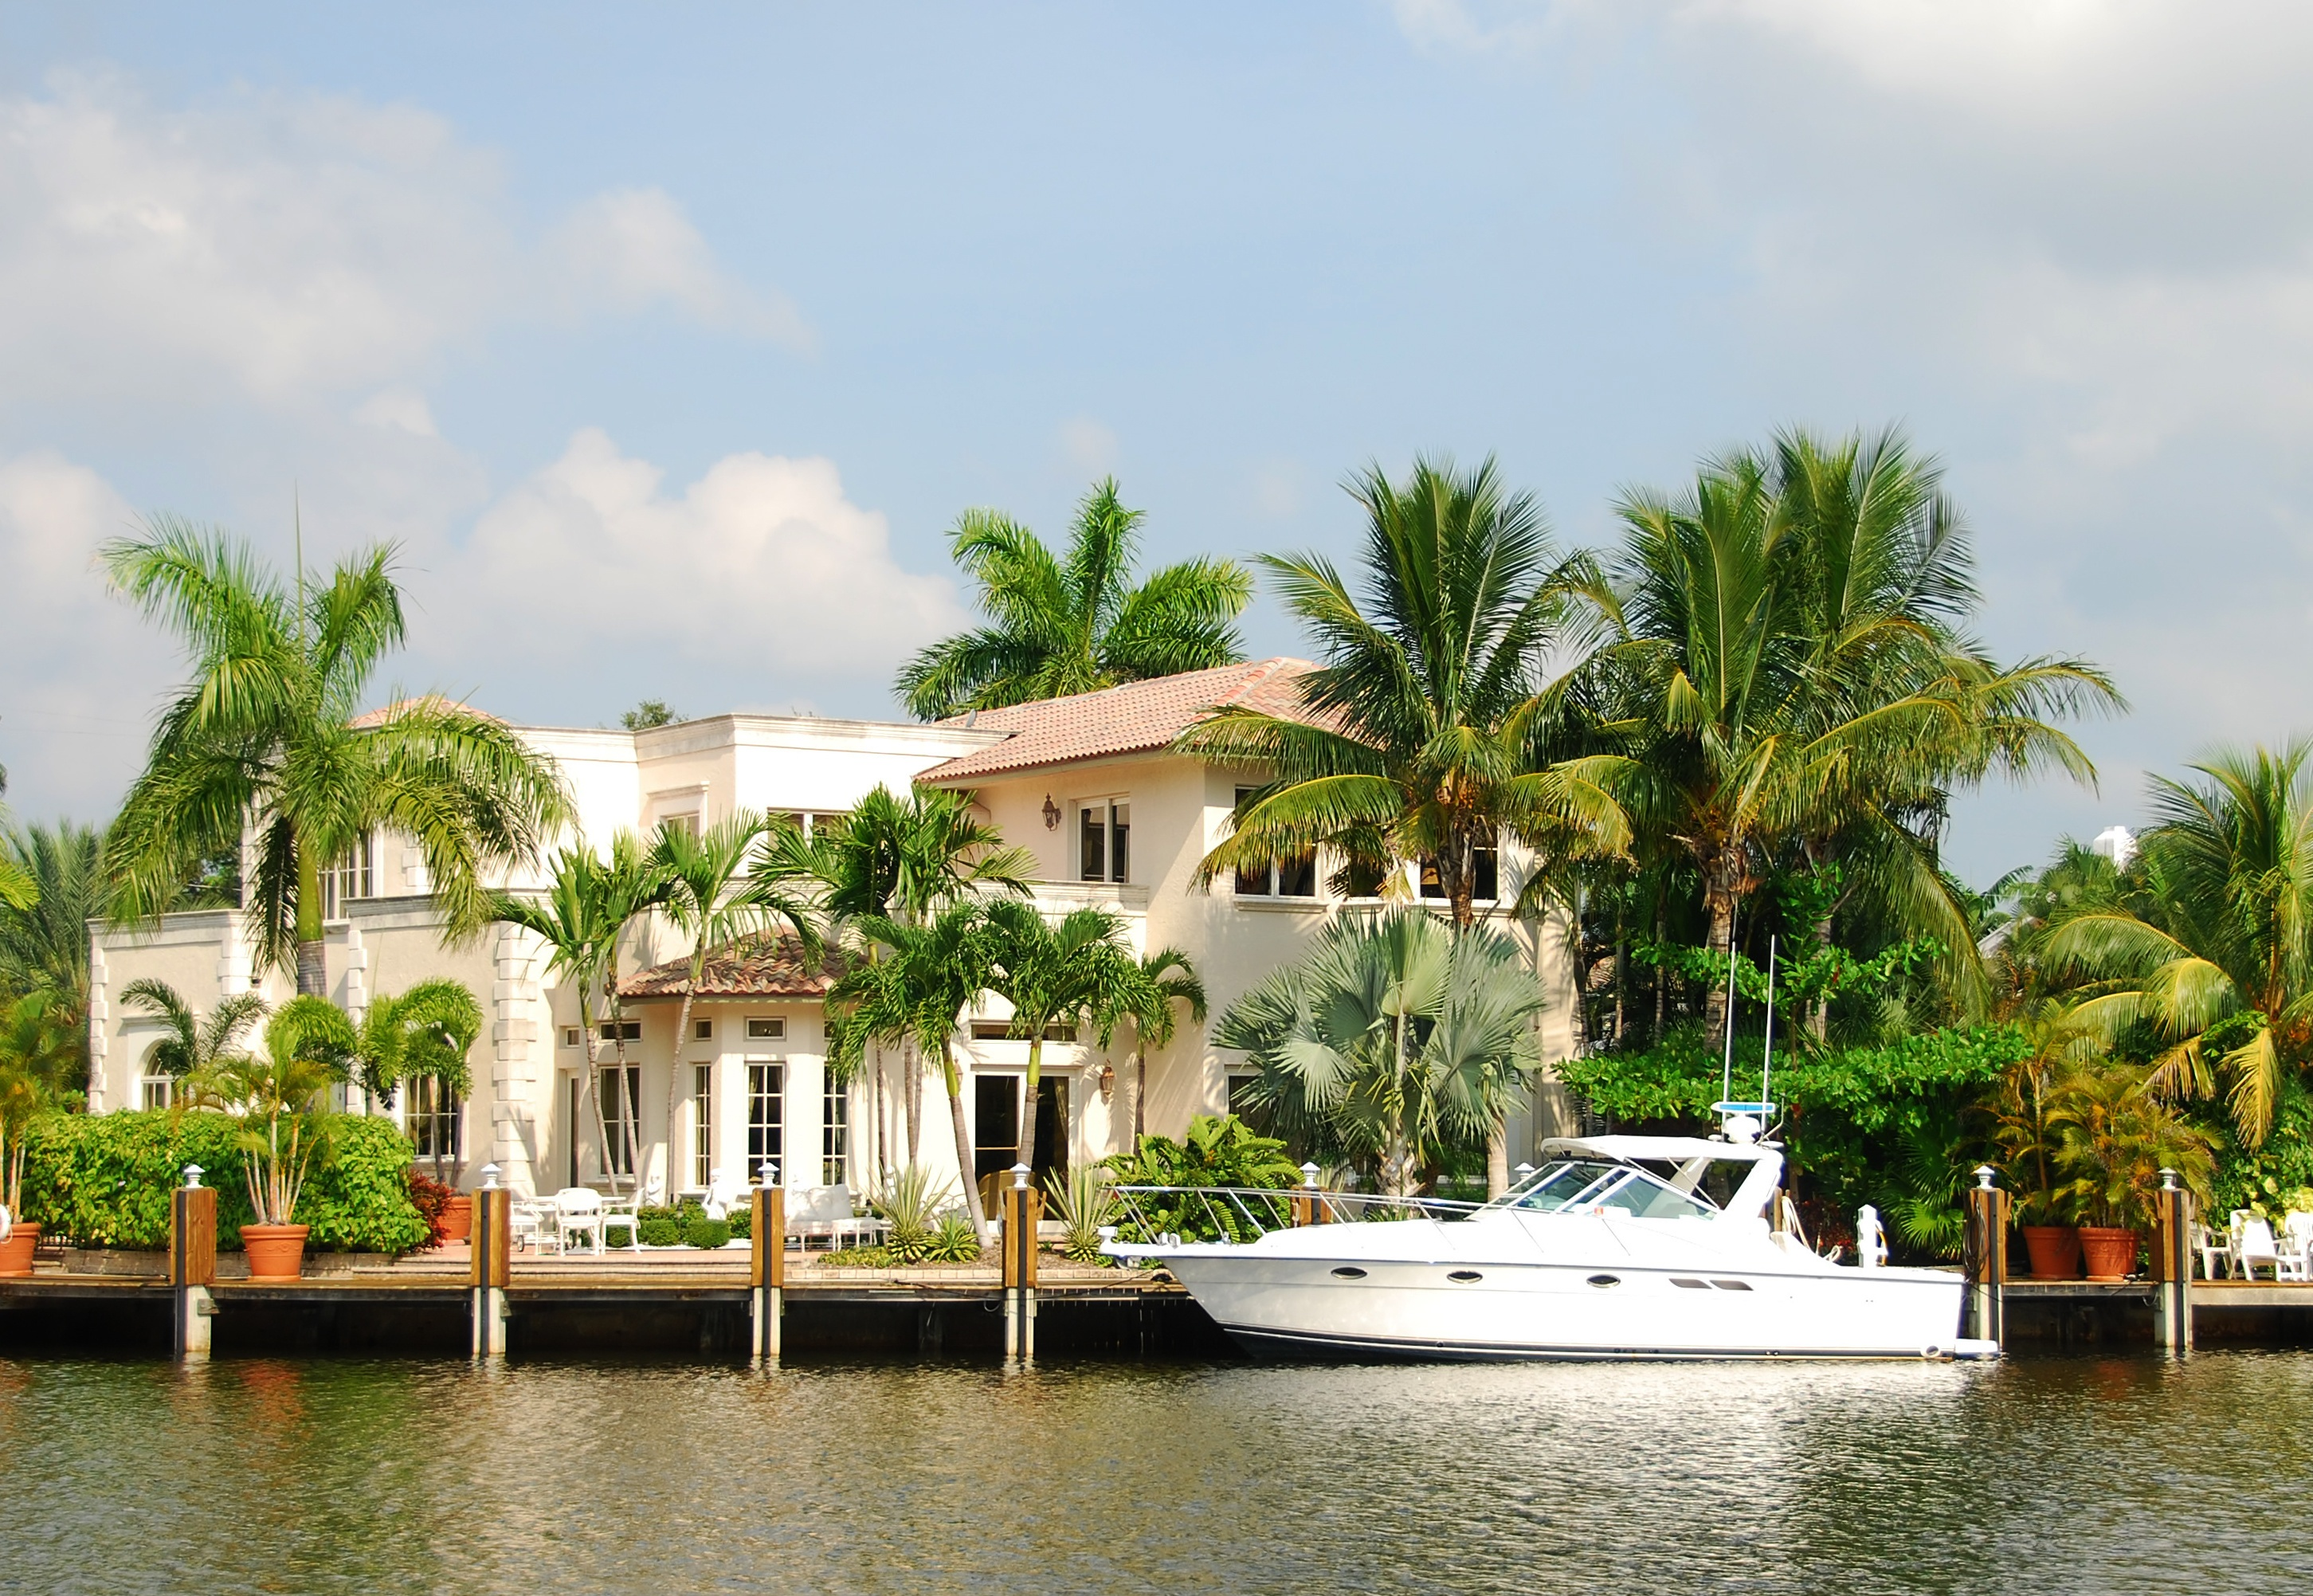 How to Prepare Your Florida Waterfront Home for Hurricanes and Severe Weather